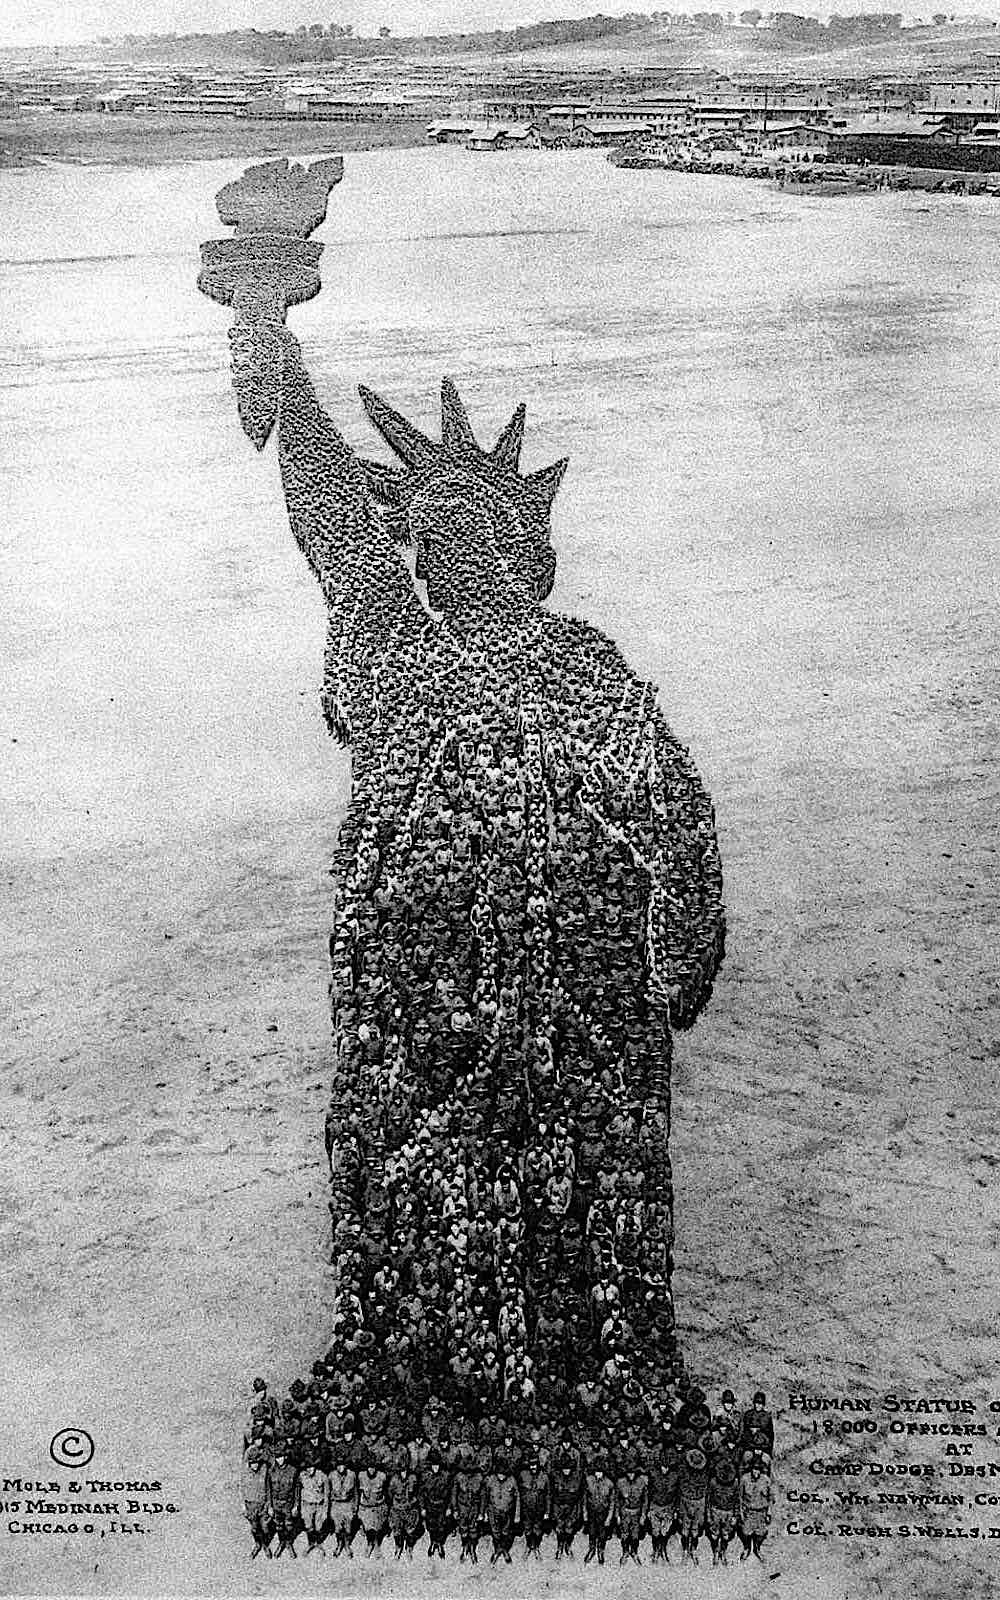 1918 Camp Dodge,  Des Moines aerial photo of 800 men human statue of liberty